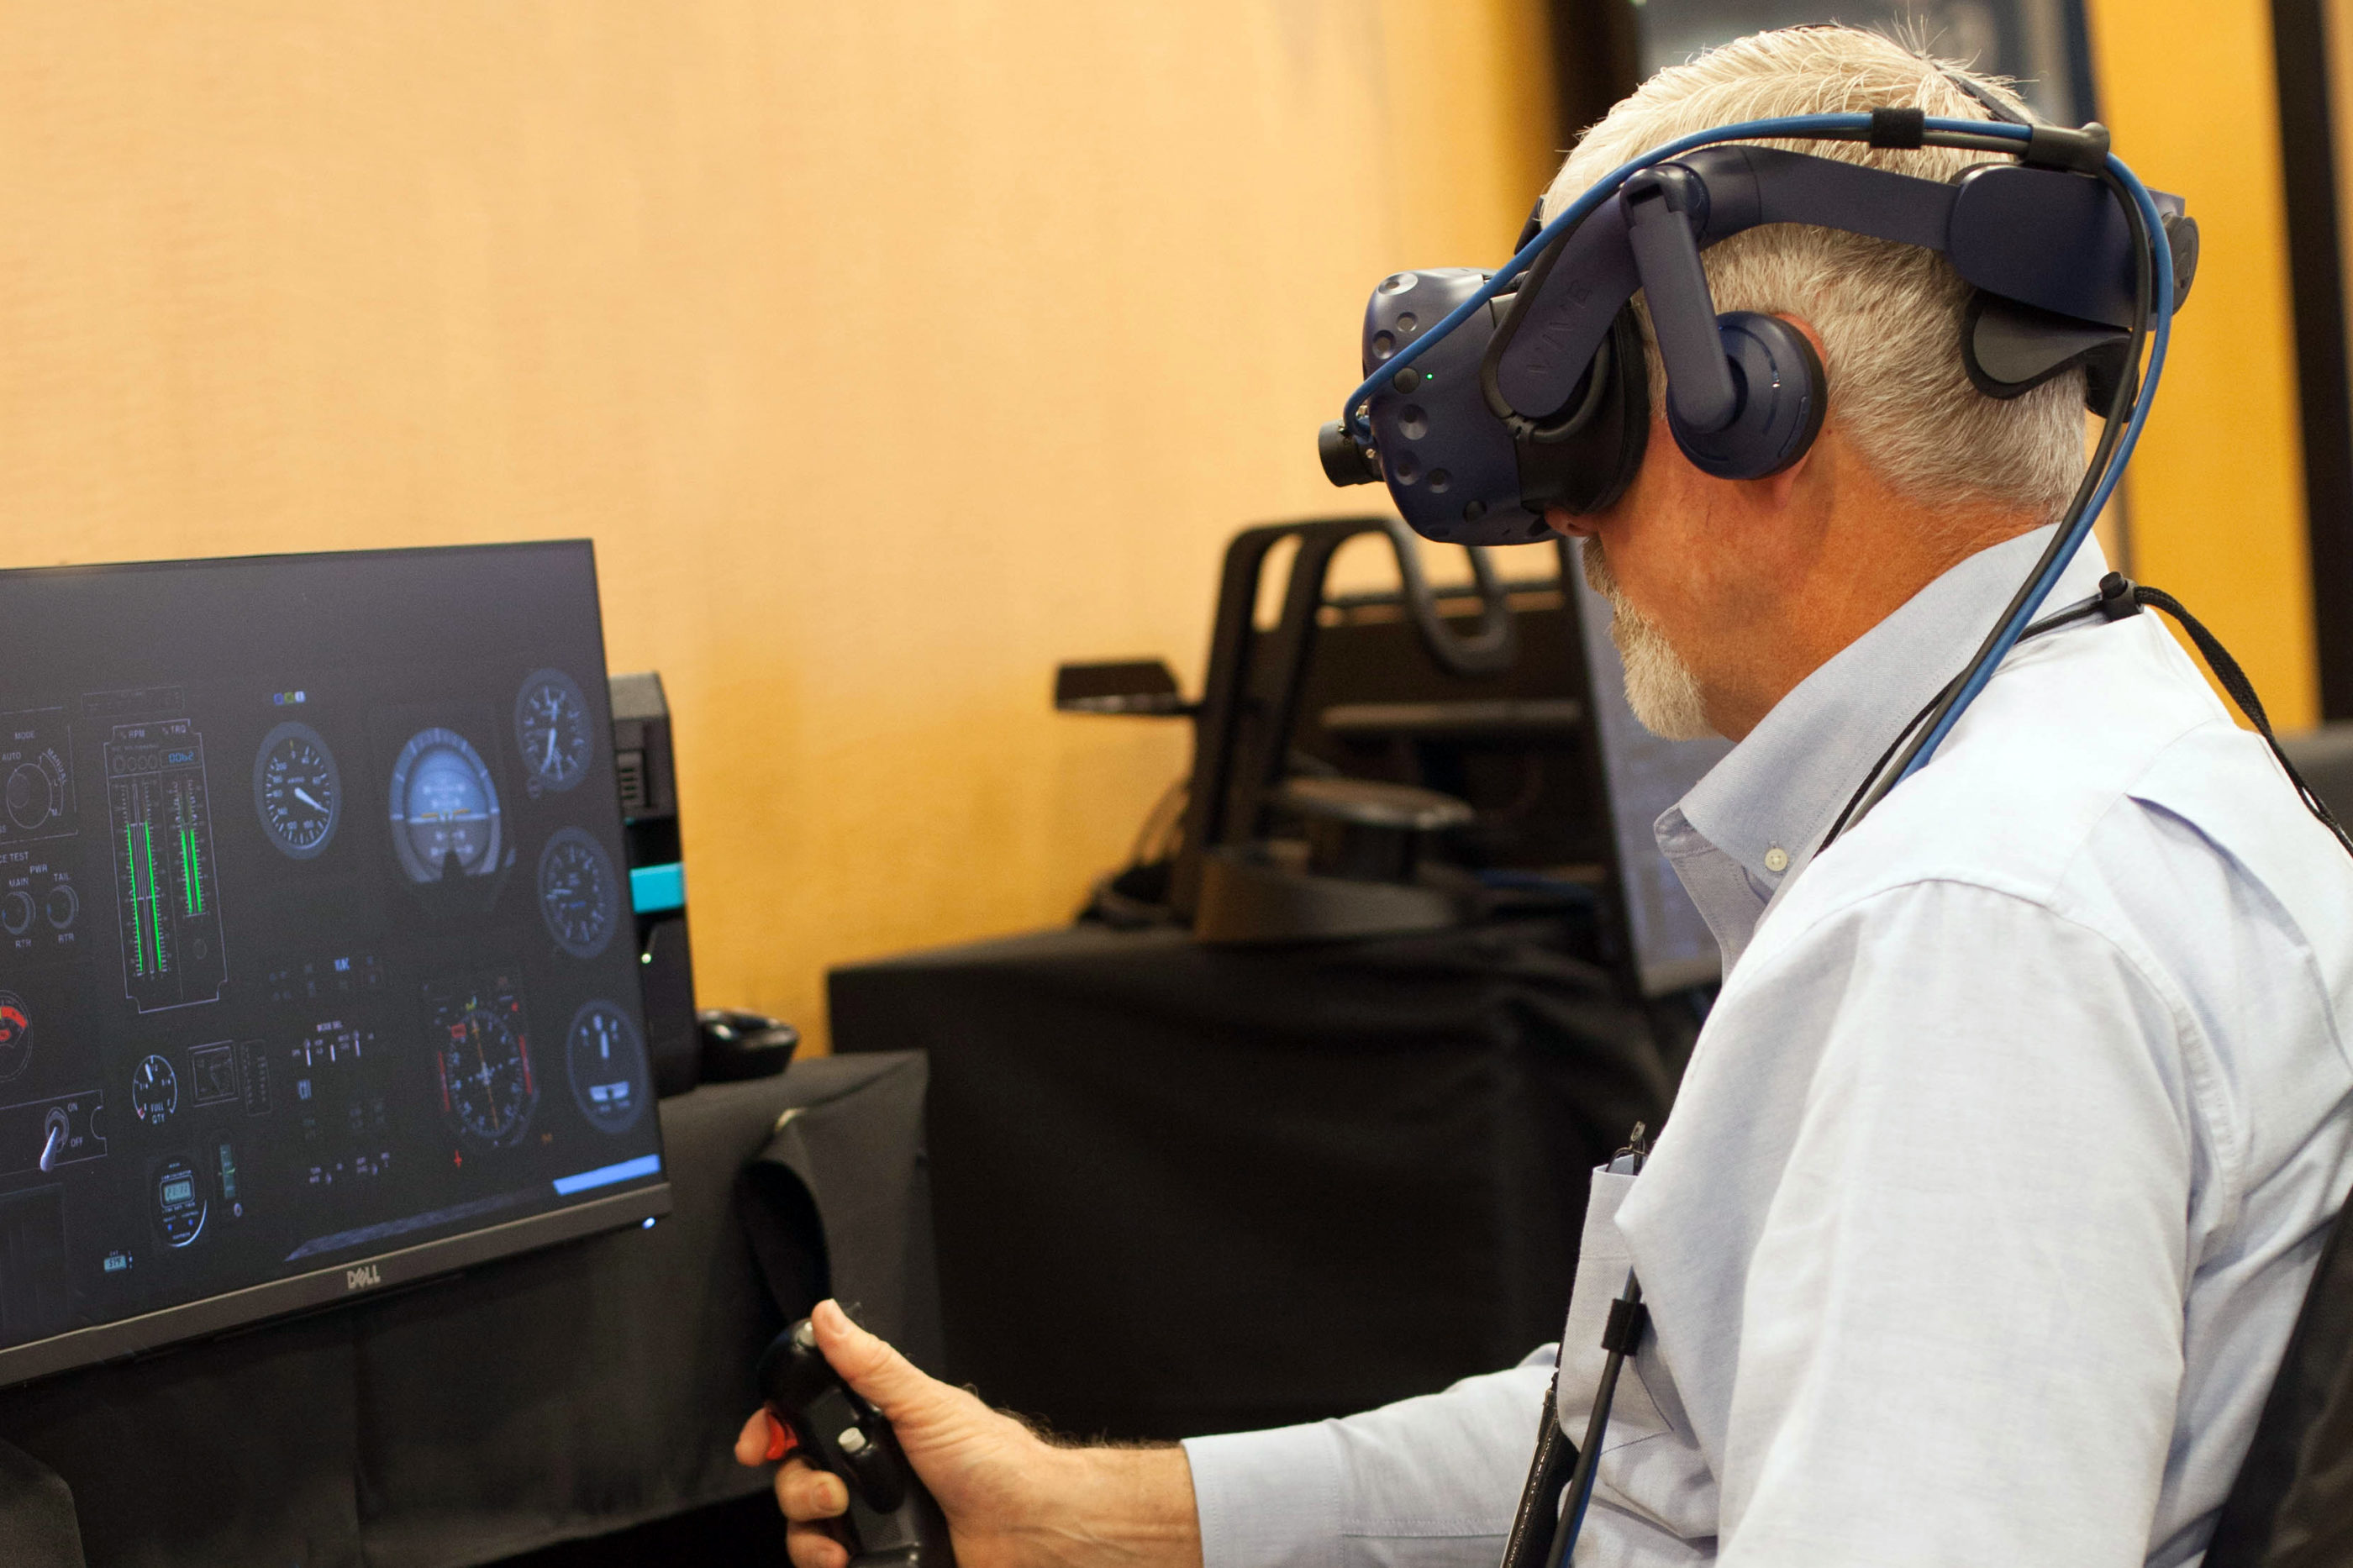 verticalmag.com - Press Release - FlightSafety integrates its Mixed Reality and VITAL 1100 visual systems into CPTs